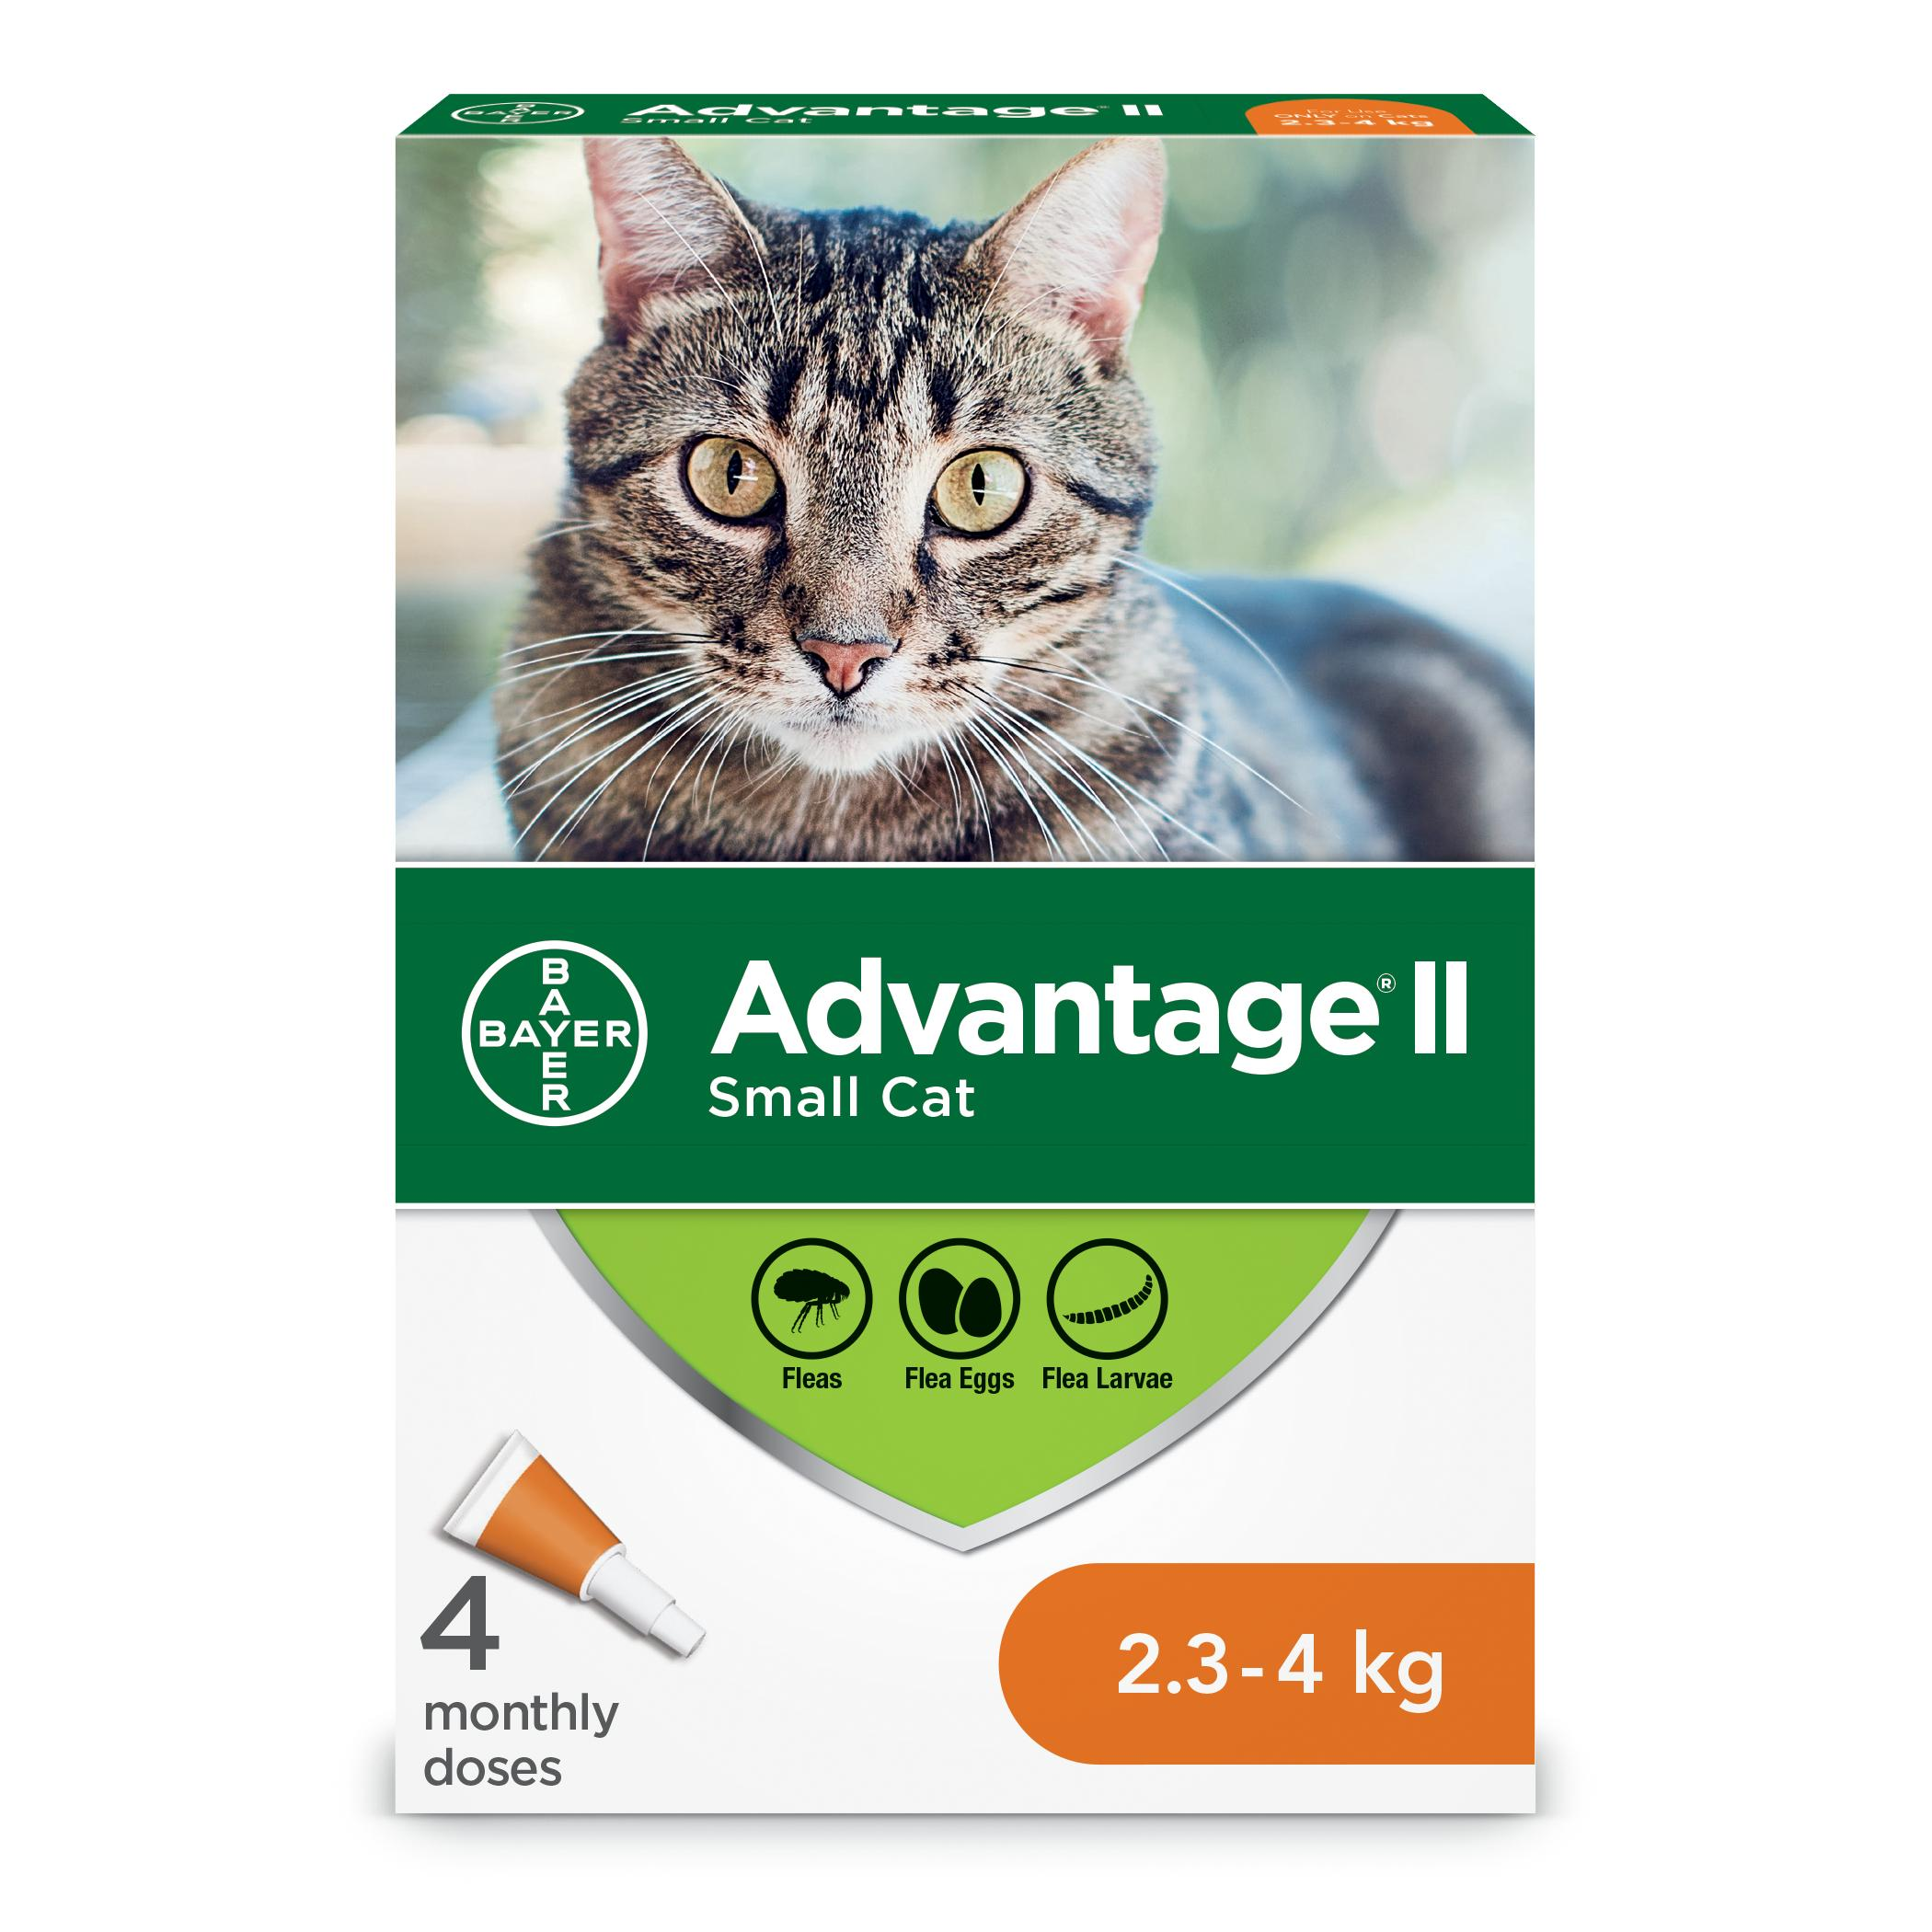 Bayer Advantage II Flea Protection for Small Cats 2.3-4-kg, 4-pk